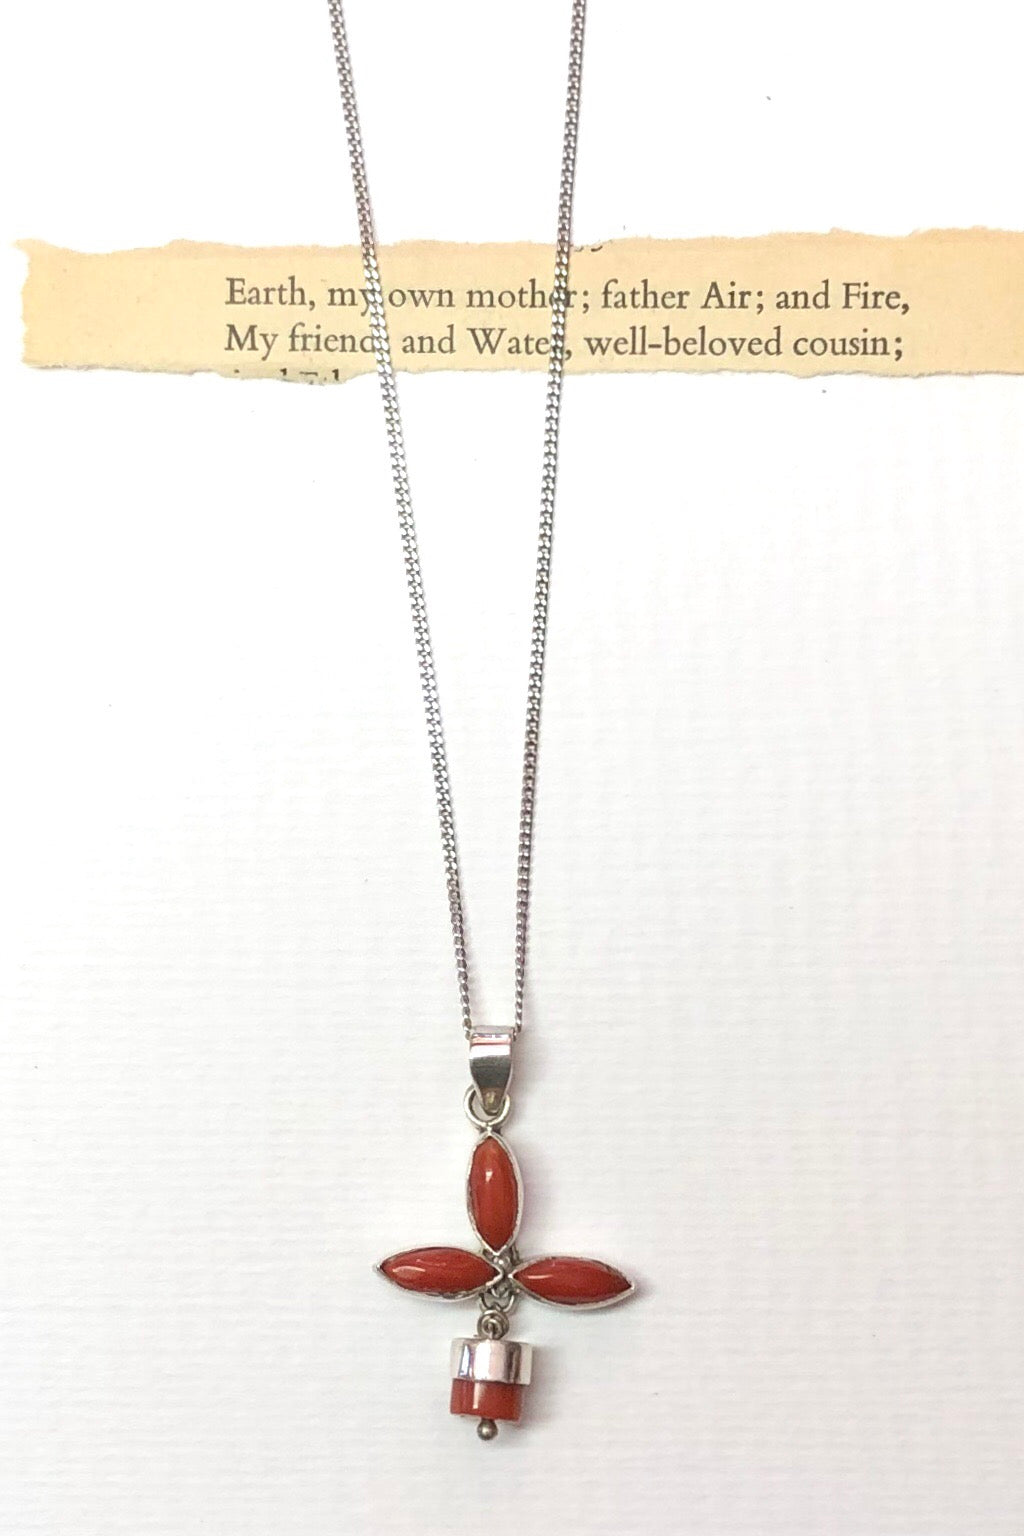 Echo Red Coral and Silver Vintage Pendant is an old piece that has a polished deep red orange coloured coral and 925 silver set pendant.